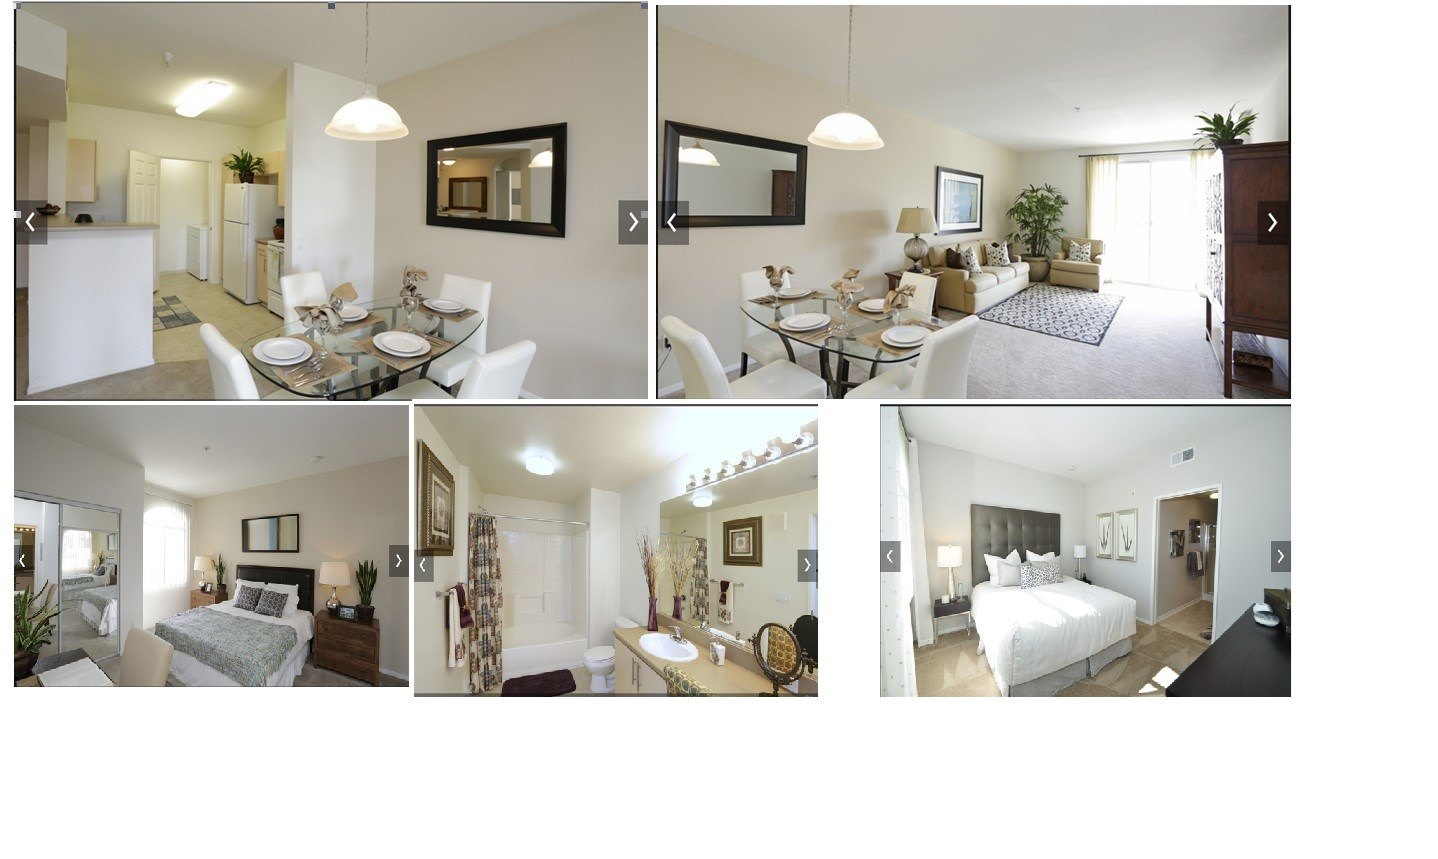 2b with attached bathroom apartment for rent in la jolla utc in san